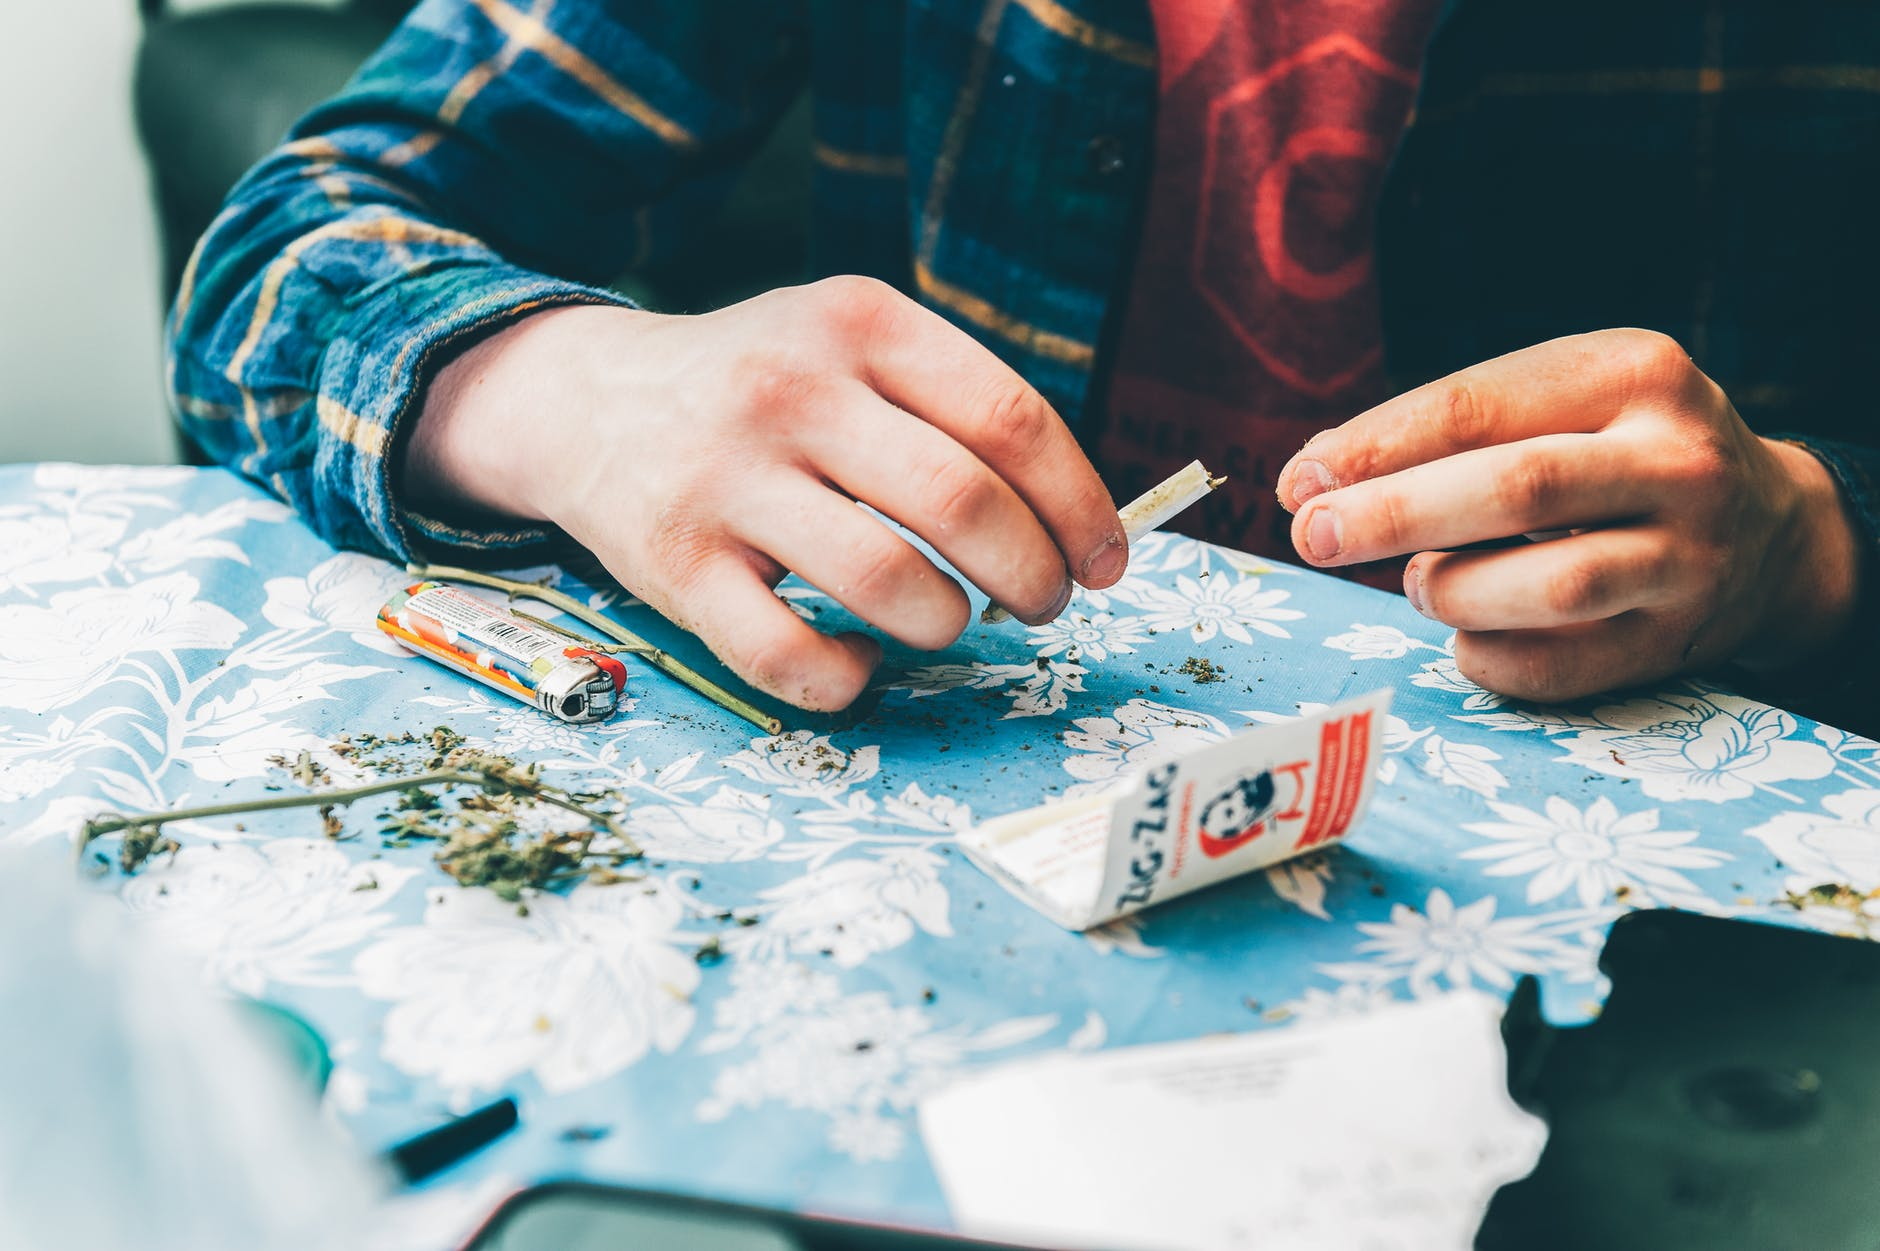 person rolling a paper with weed